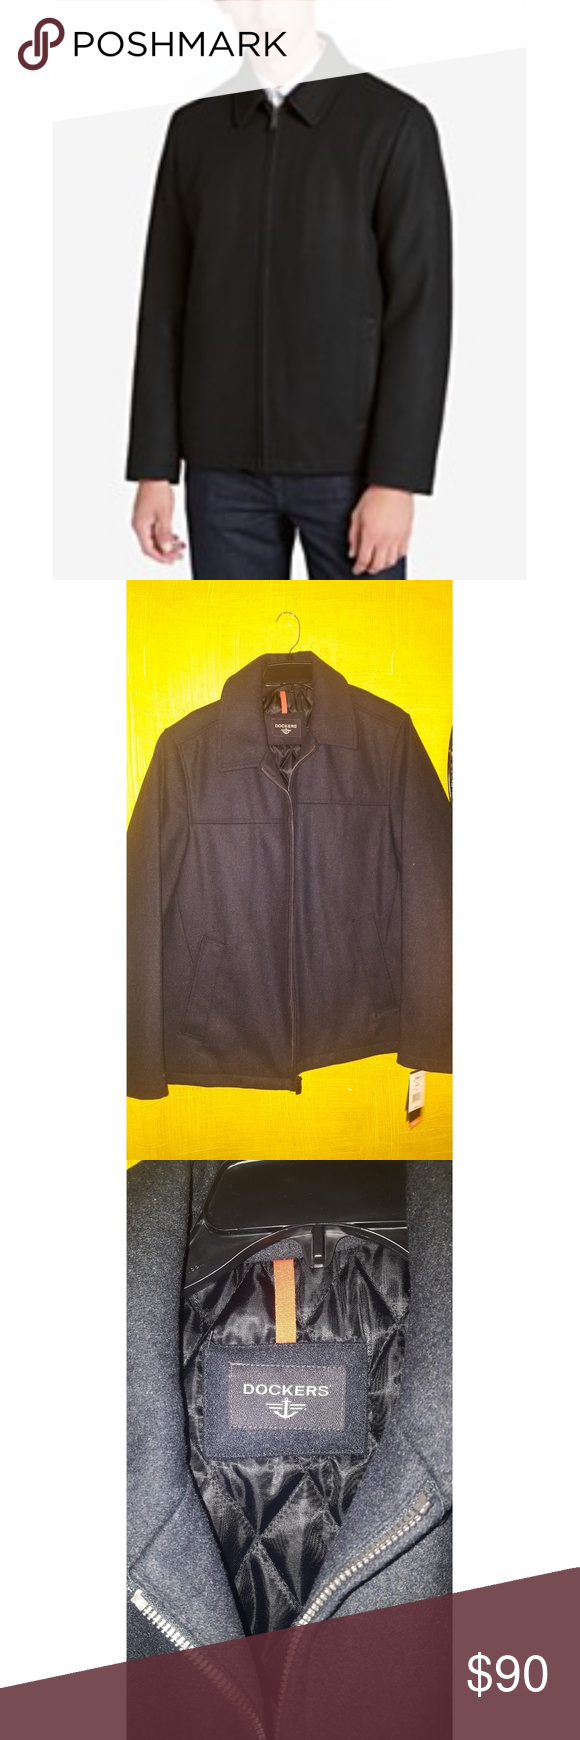 NWT DOCKERS MAN JACKET This men wool blend coat from